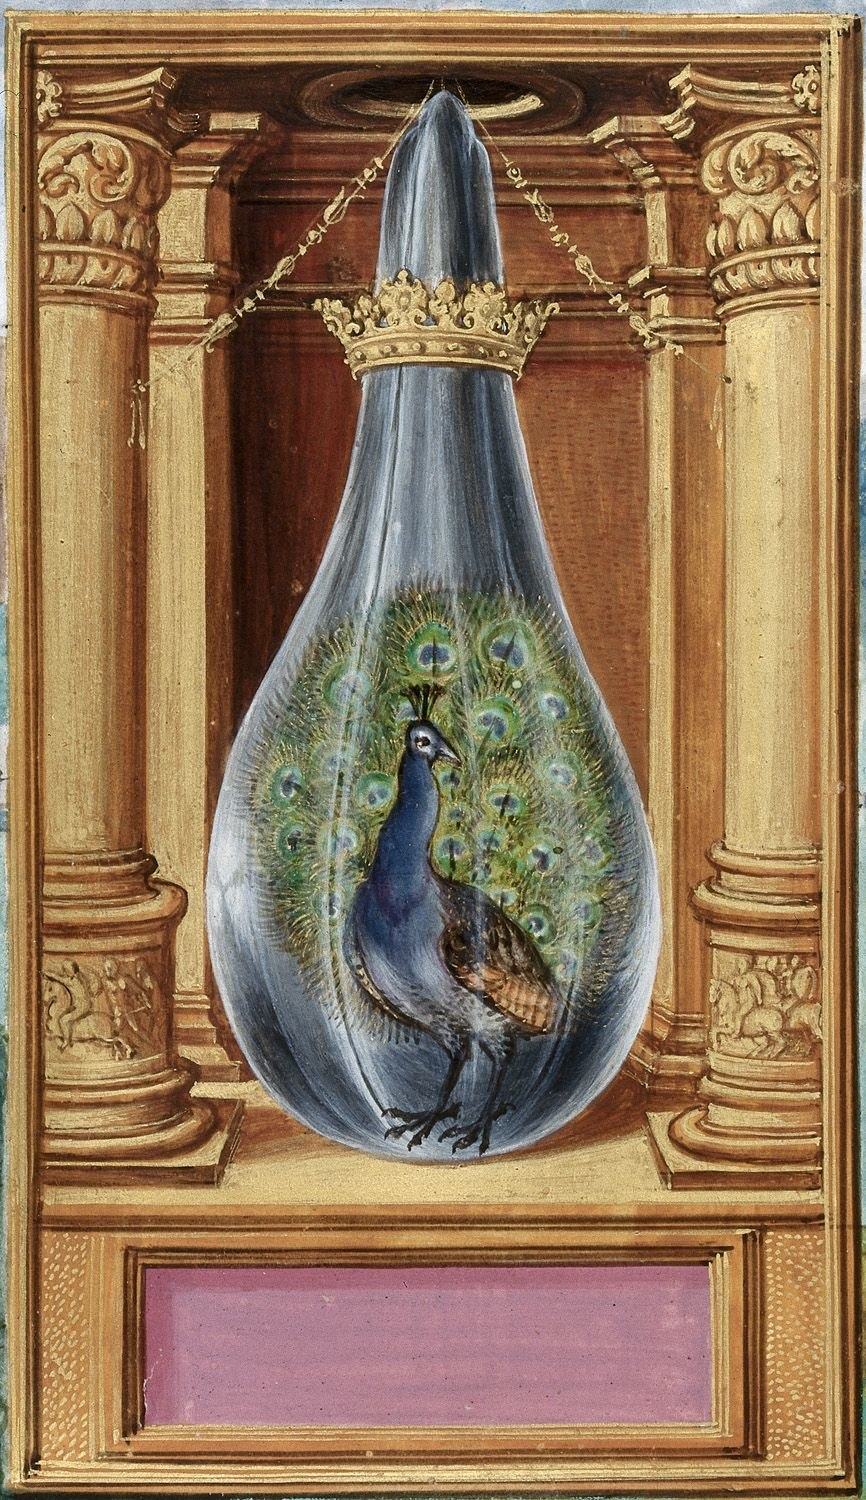 Peacock from BL Harley 3469